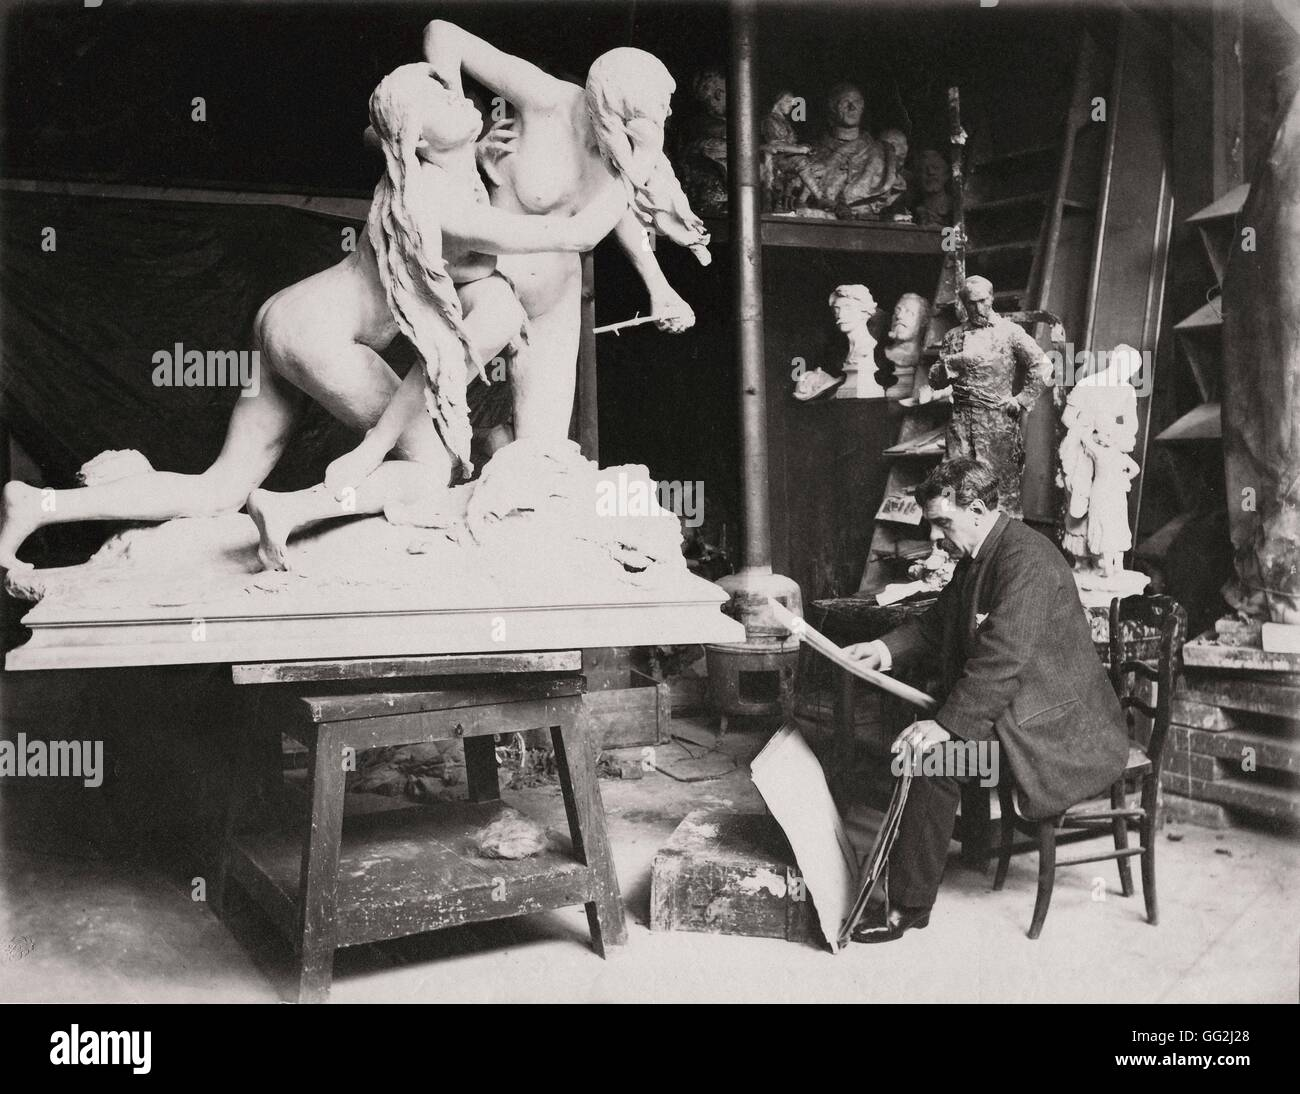 French painter and sculptor Alexandre Falguière in his Paris studio in 1886, in front of his plaster sculpture 'The Stock Photo